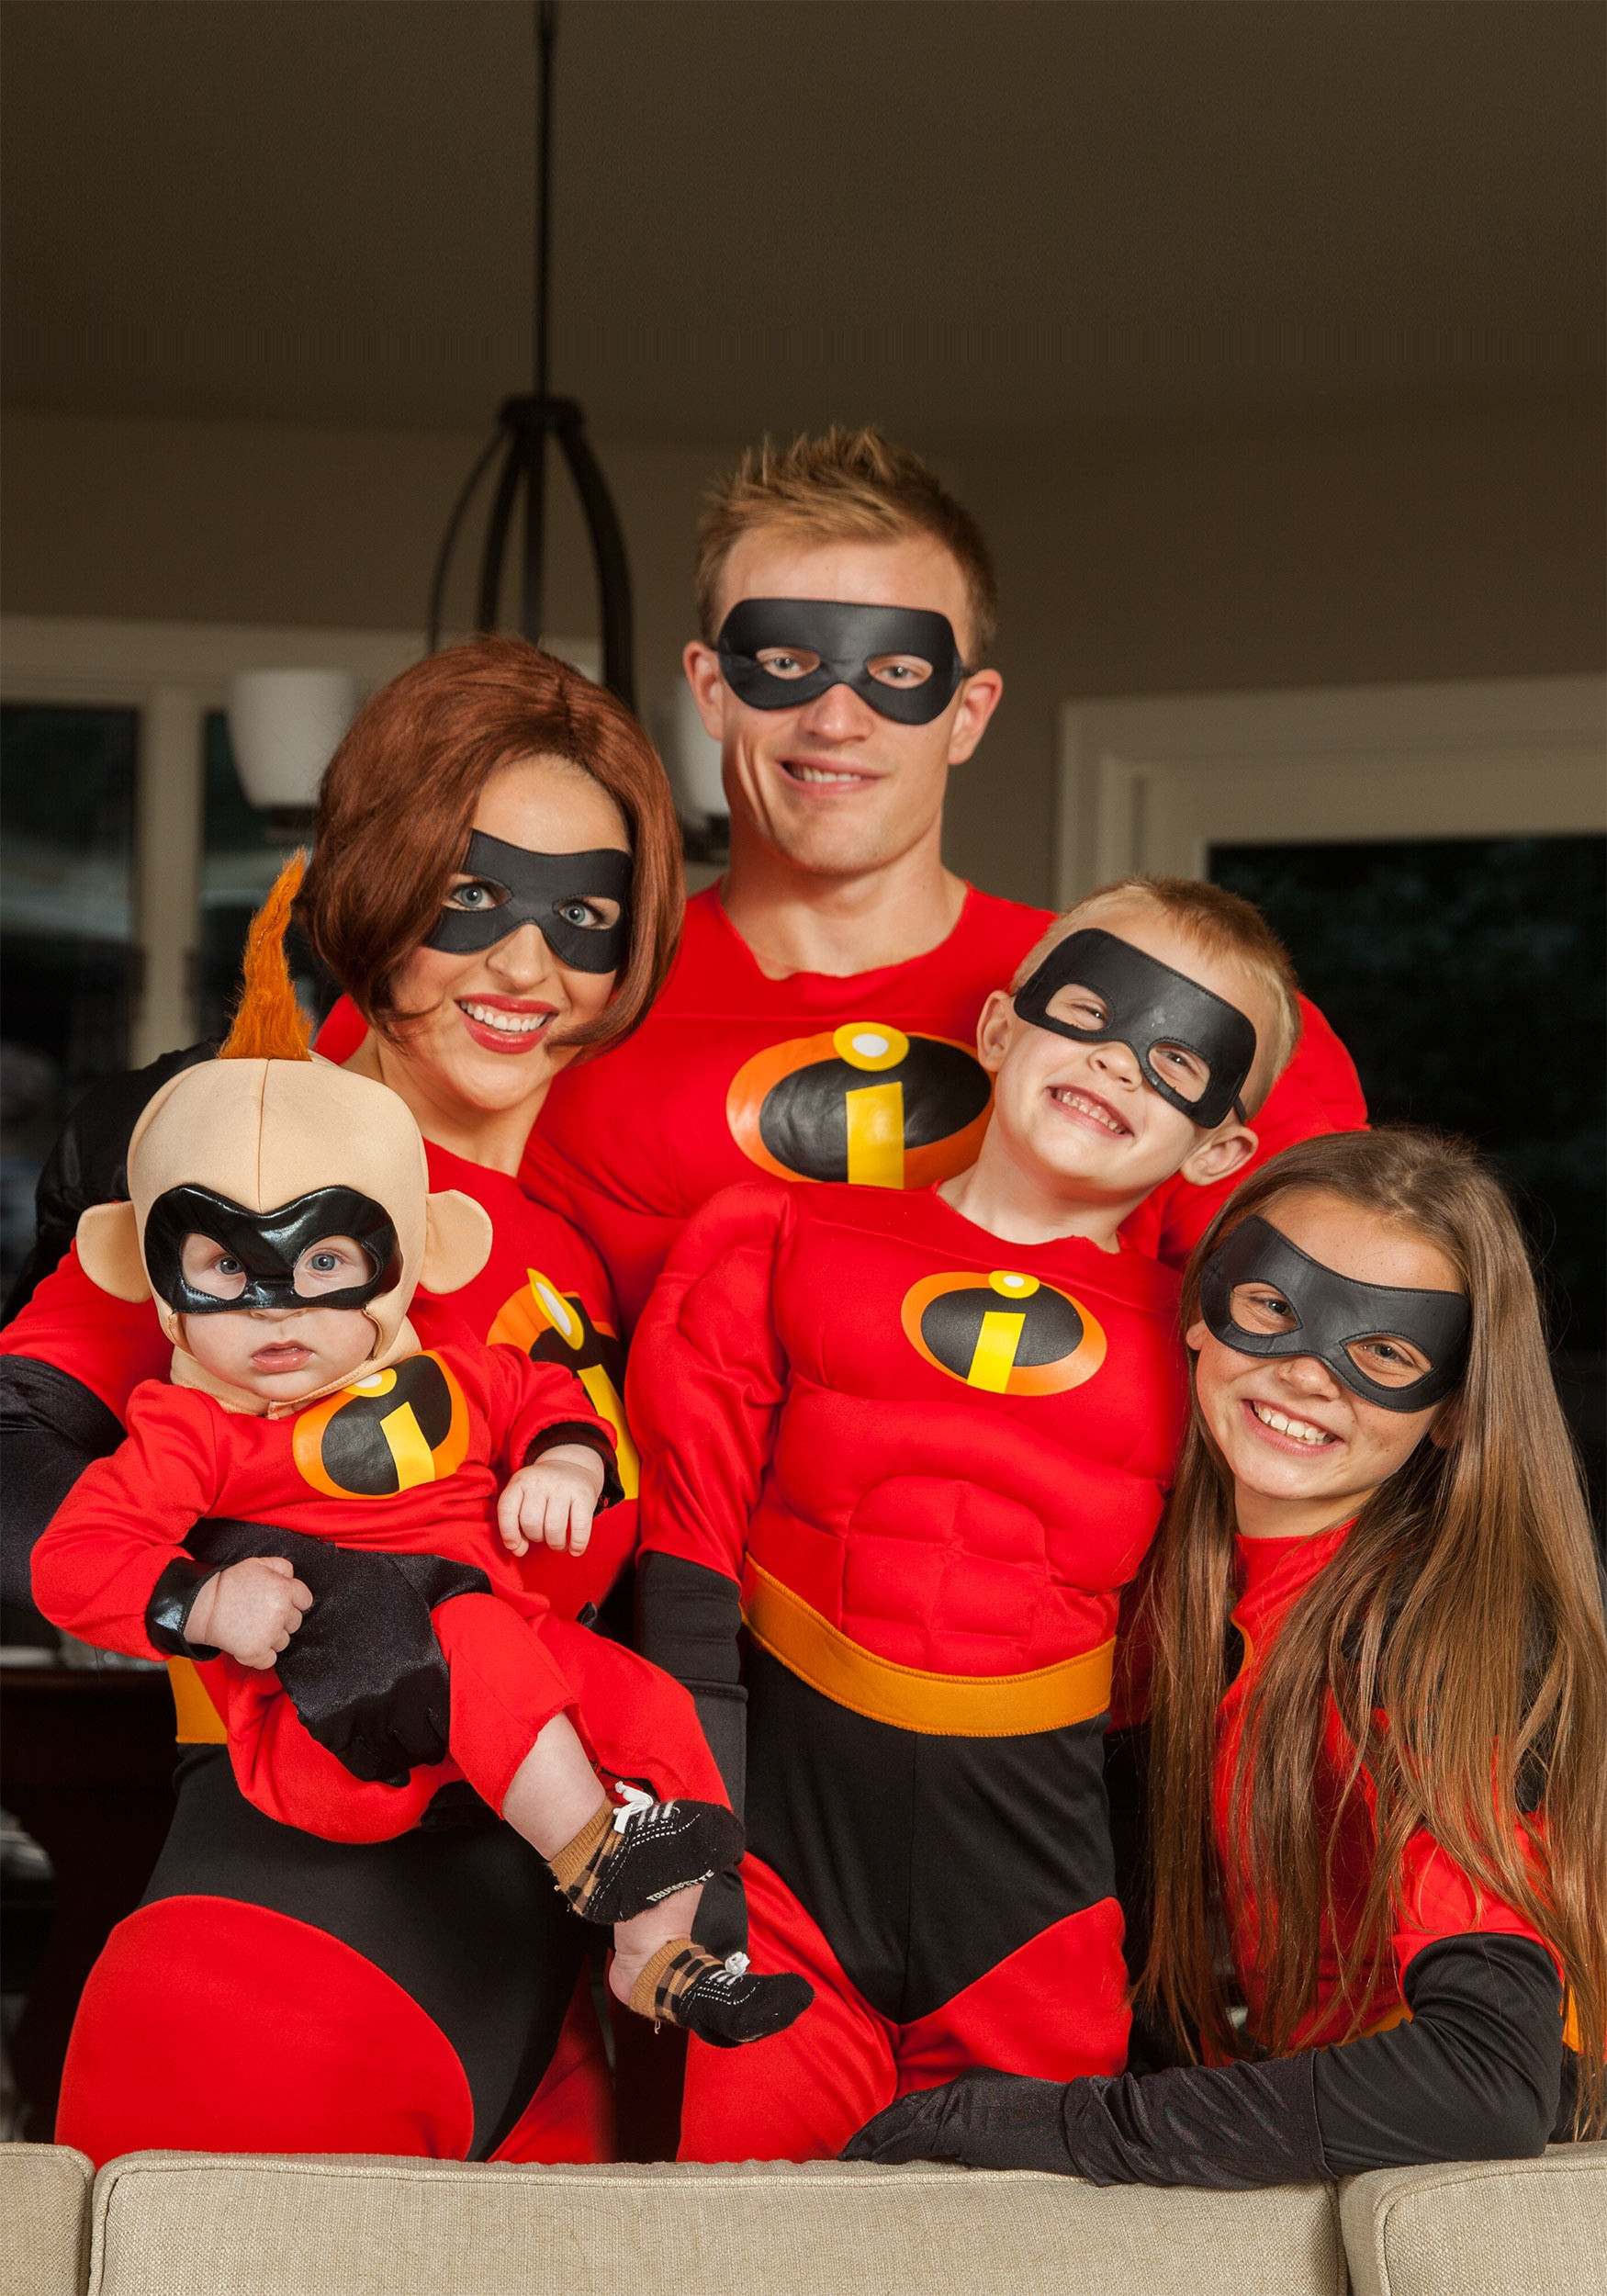 Best ideas about Incredibles DIY Costumes . Save or Pin Kids Incredibles Dash Costume Now.